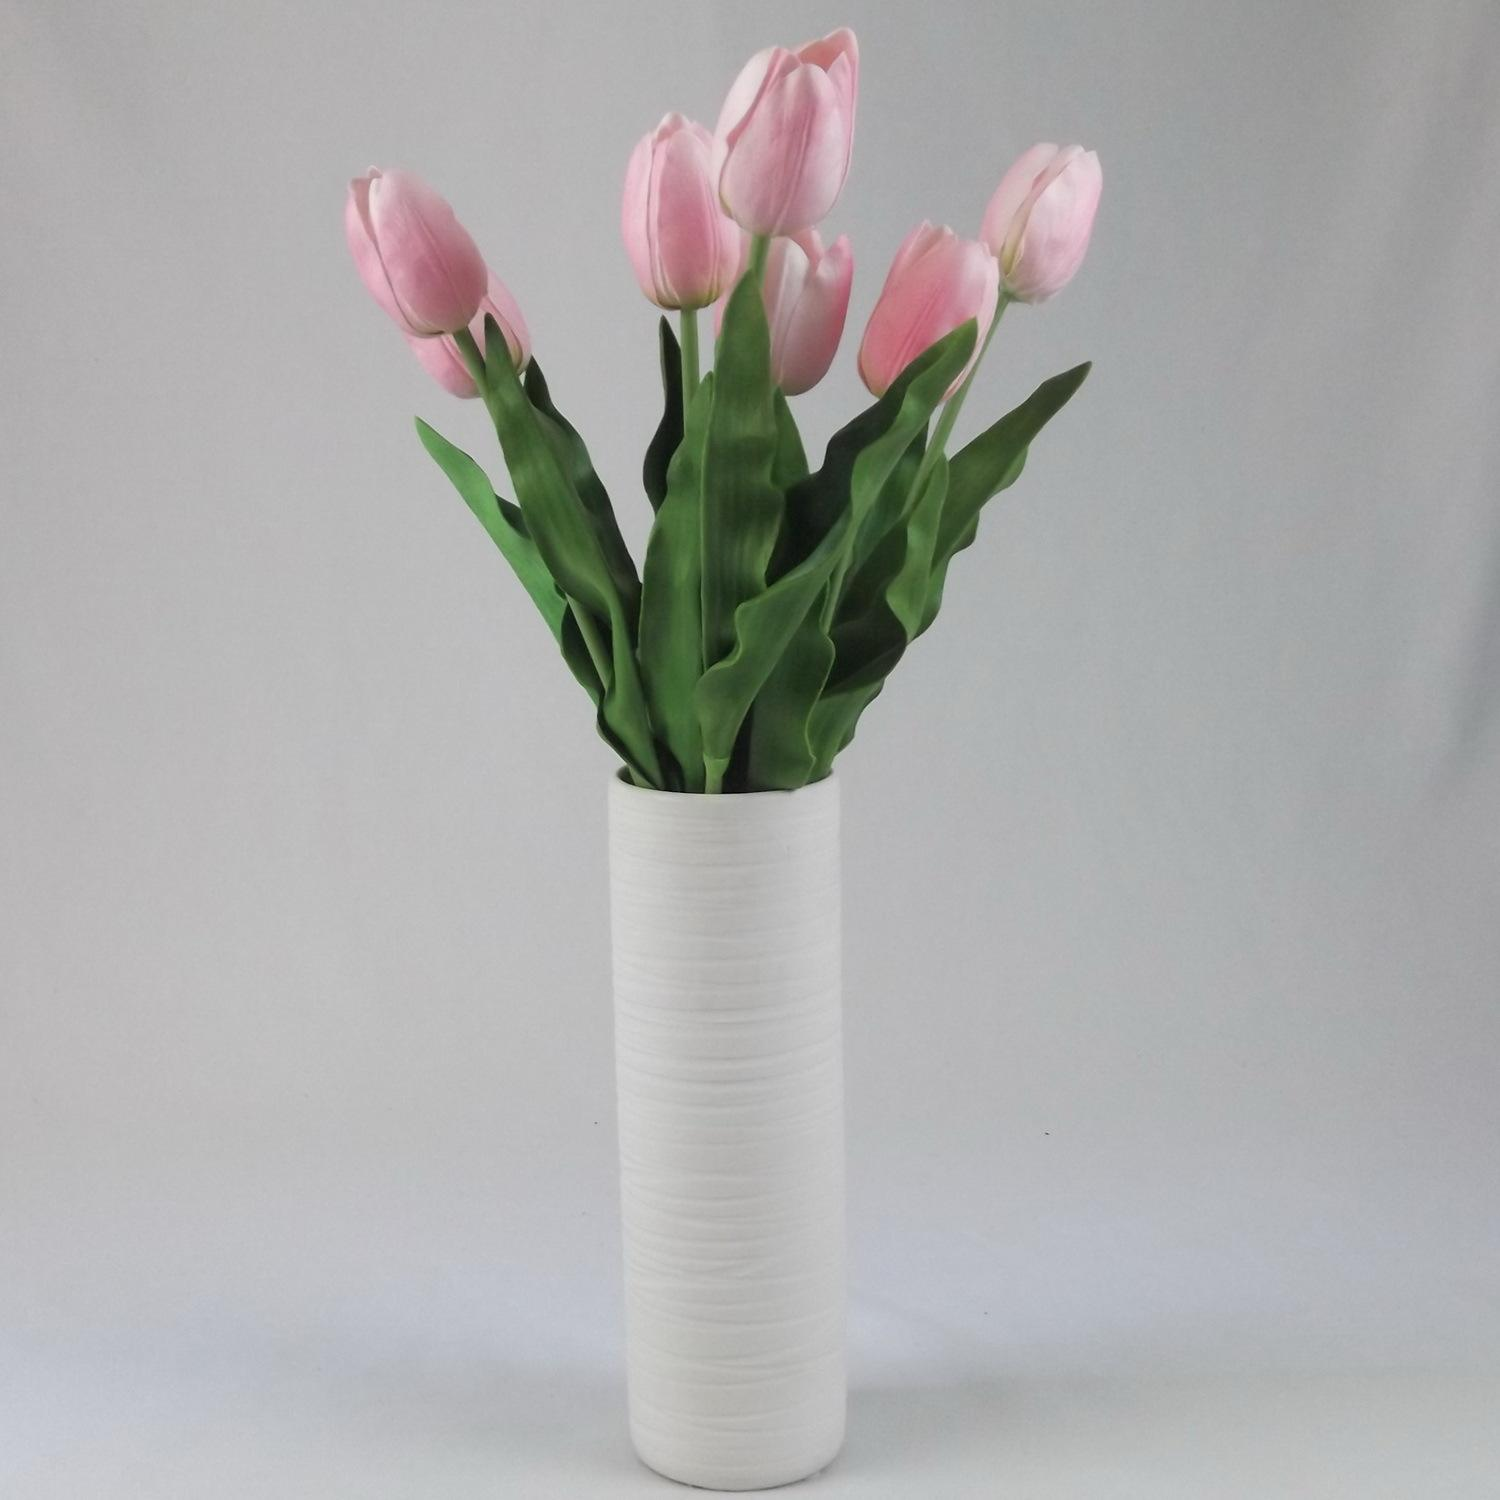 2018 23wedding decorations real touch flowers diy simulation tulip 2018 23wedding decorations real touch flowers diy simulation tulip flower wedding bouquet bride bouquet desktop bouquet 2016 new style from rogerlin izmirmasajfo Gallery